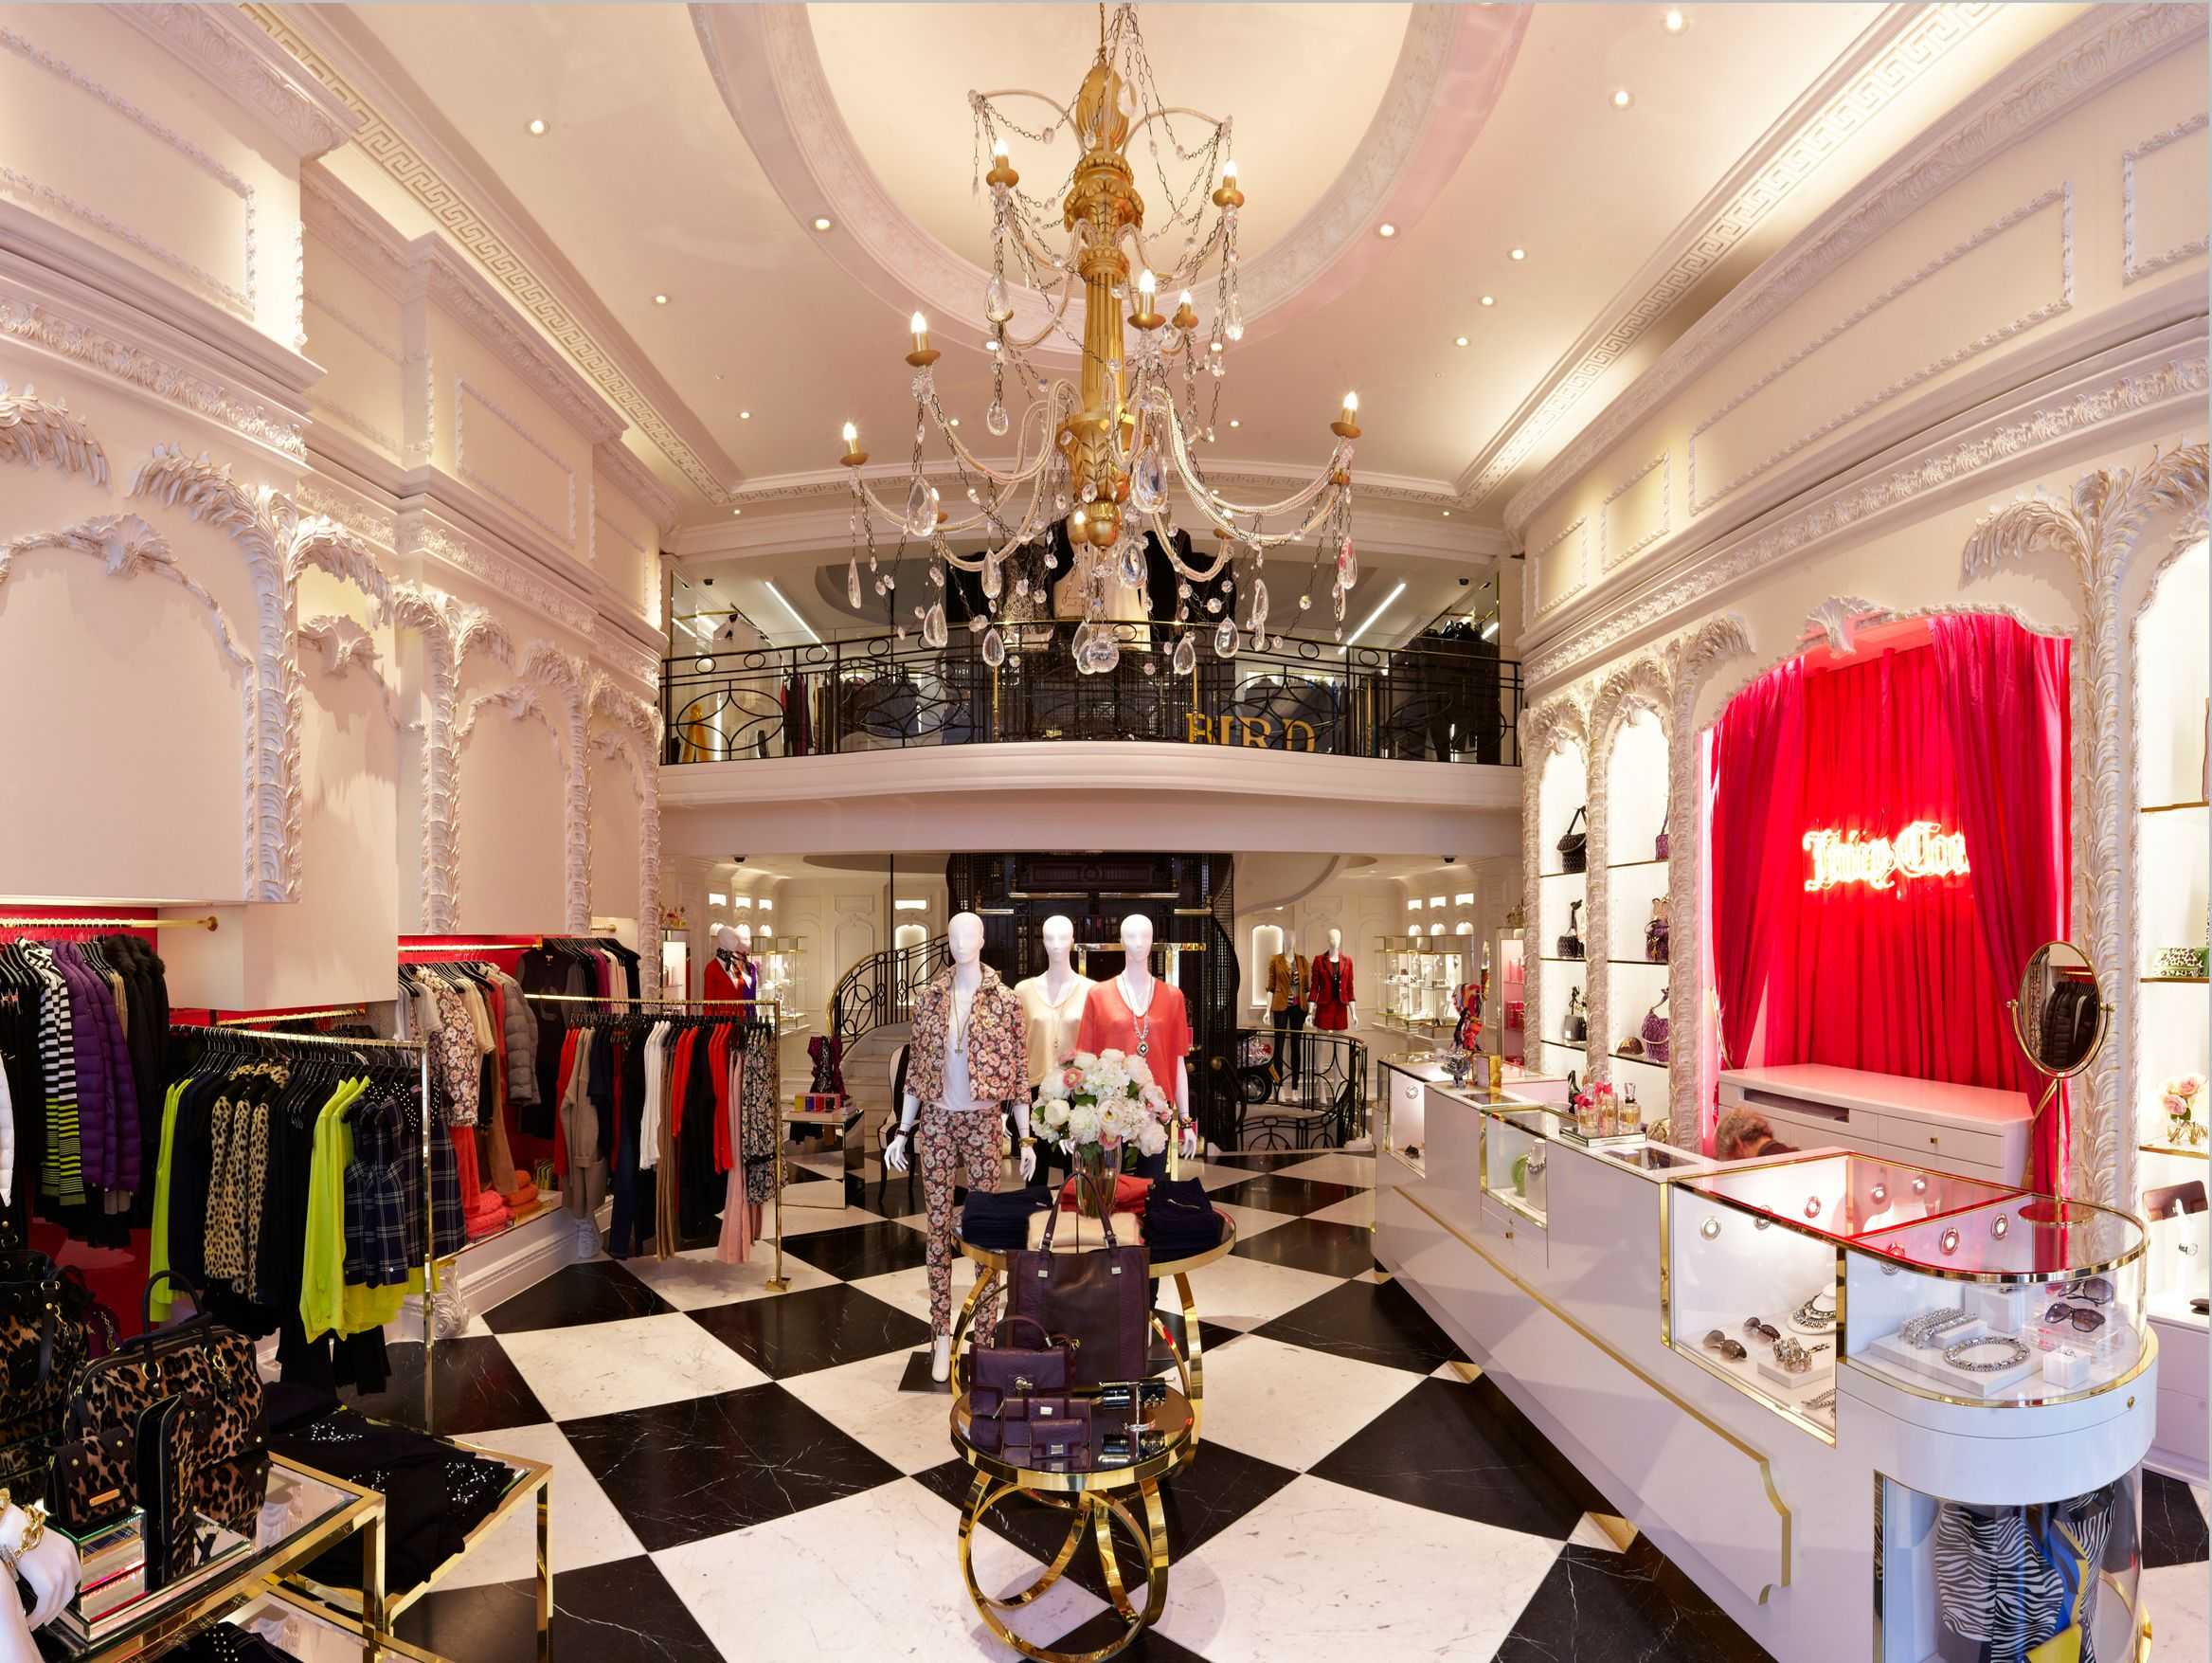 FormRoom for Juicy Couture | Bespoke Chandelier | #JuicyCouture #Retail #Lighting #Bespoke #Chandelier